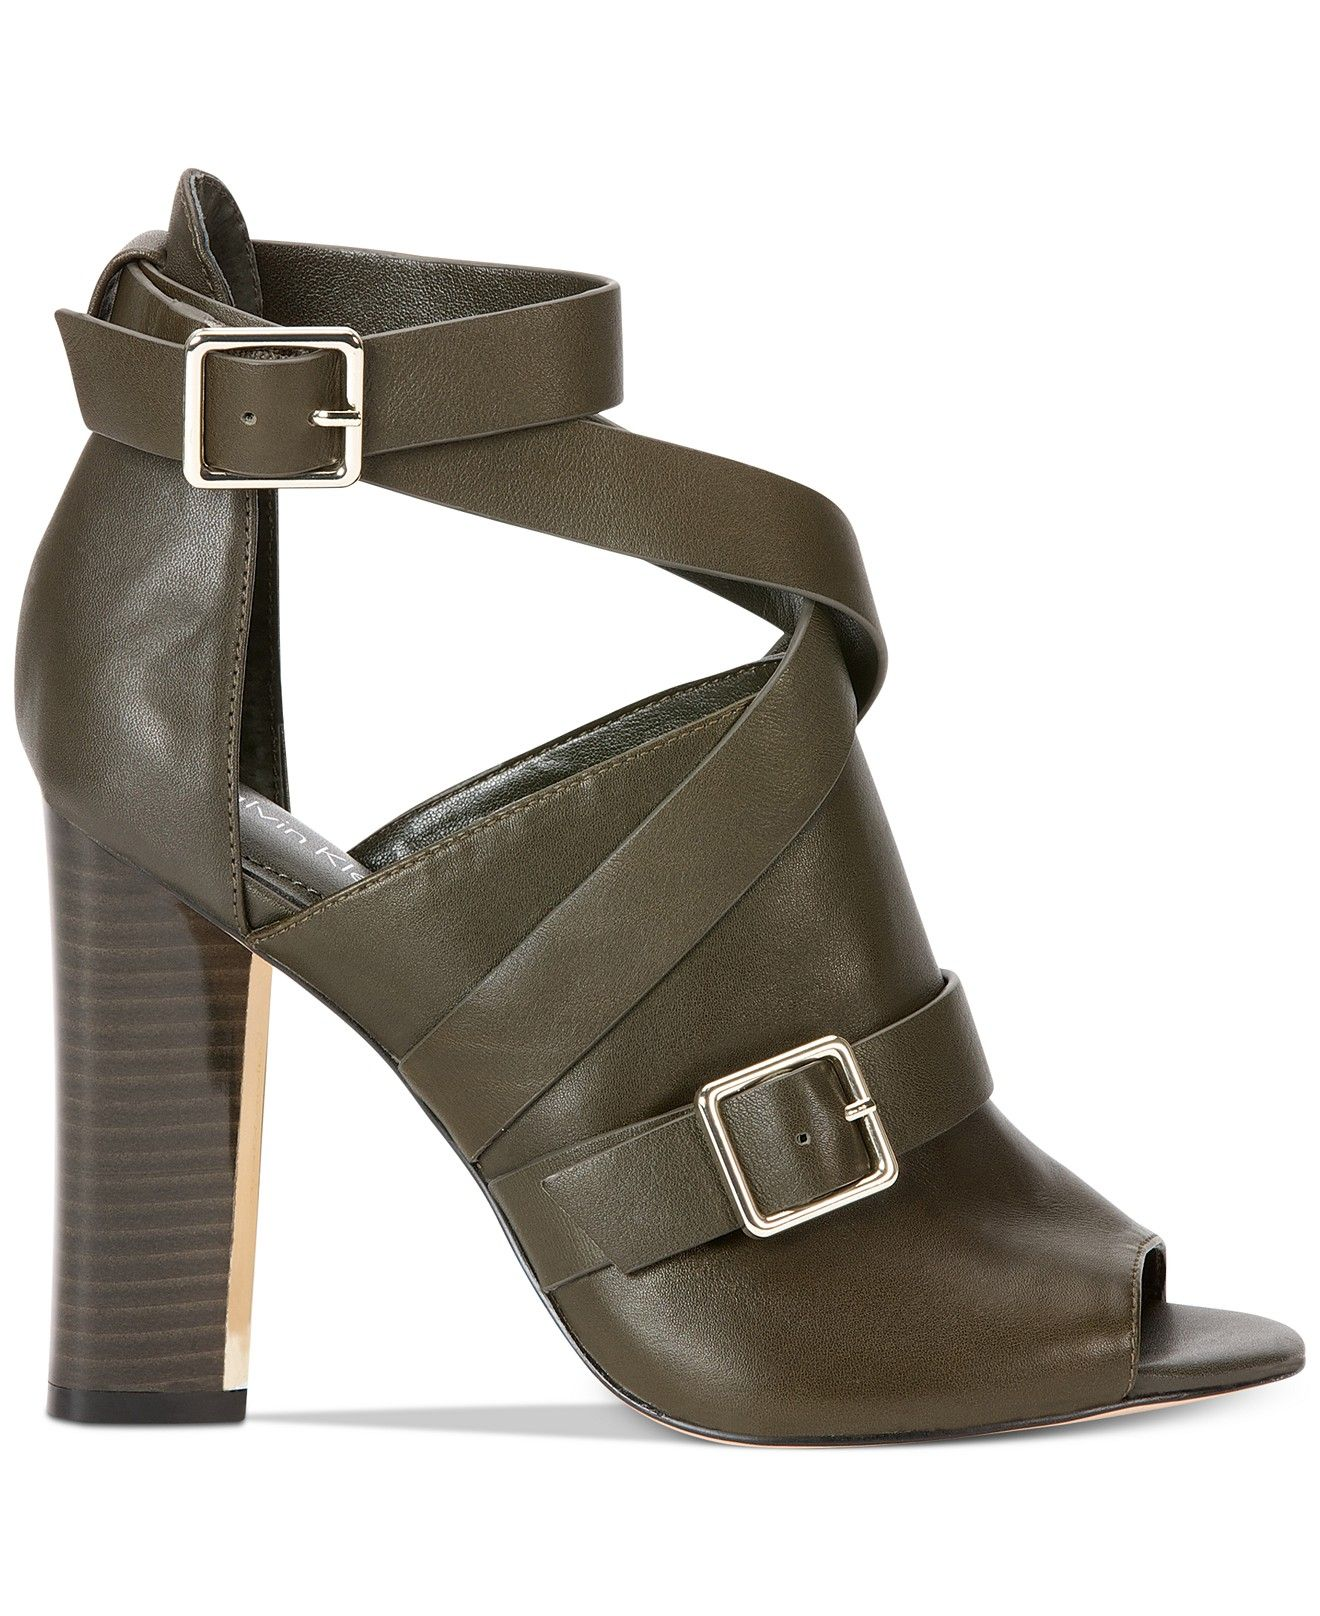 Loving the military inspiration in these Calvin Klein Zhianna dress sandals — call it combat chic!